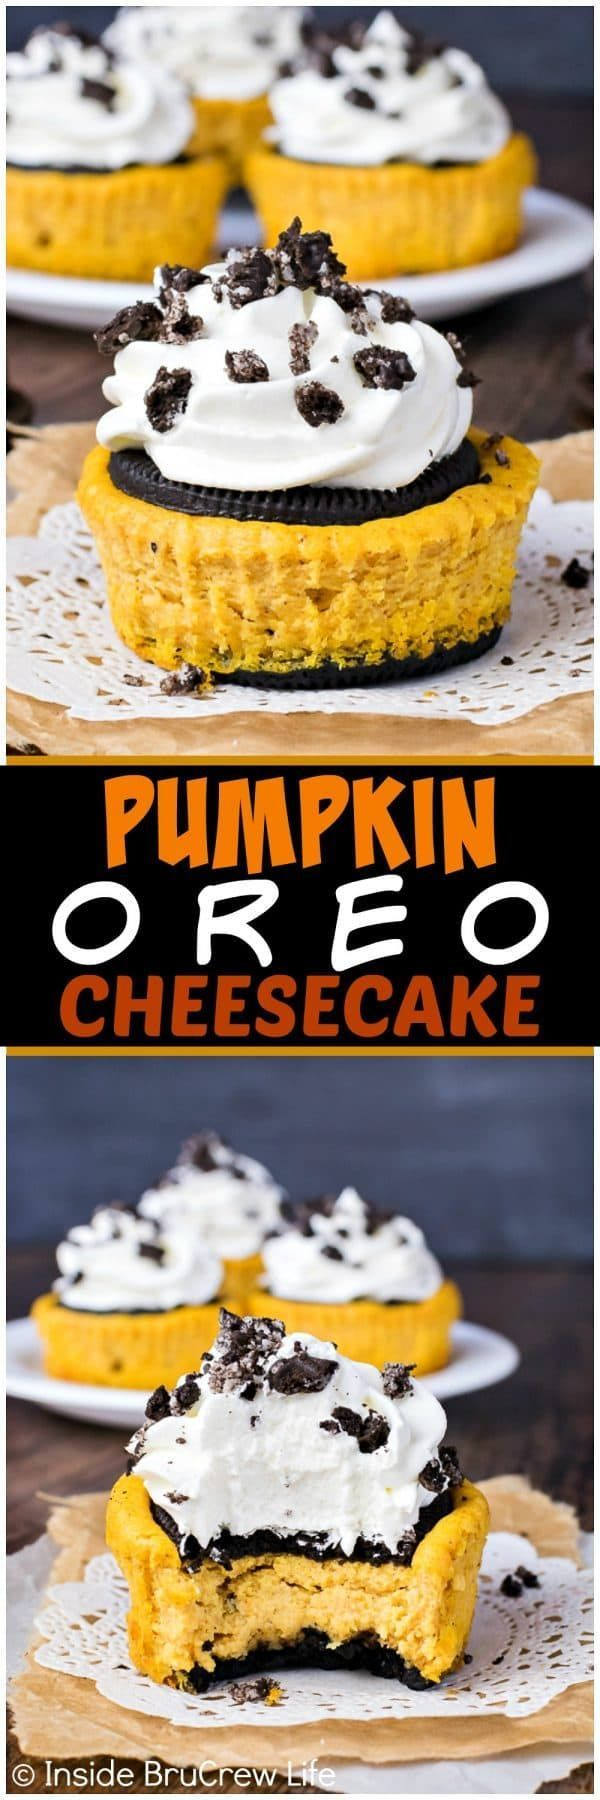 Oreo Cheesecake - creamy pumpkin cheesecake sandwiched between an Oreo cookie. This is the best fall dessert recipe!